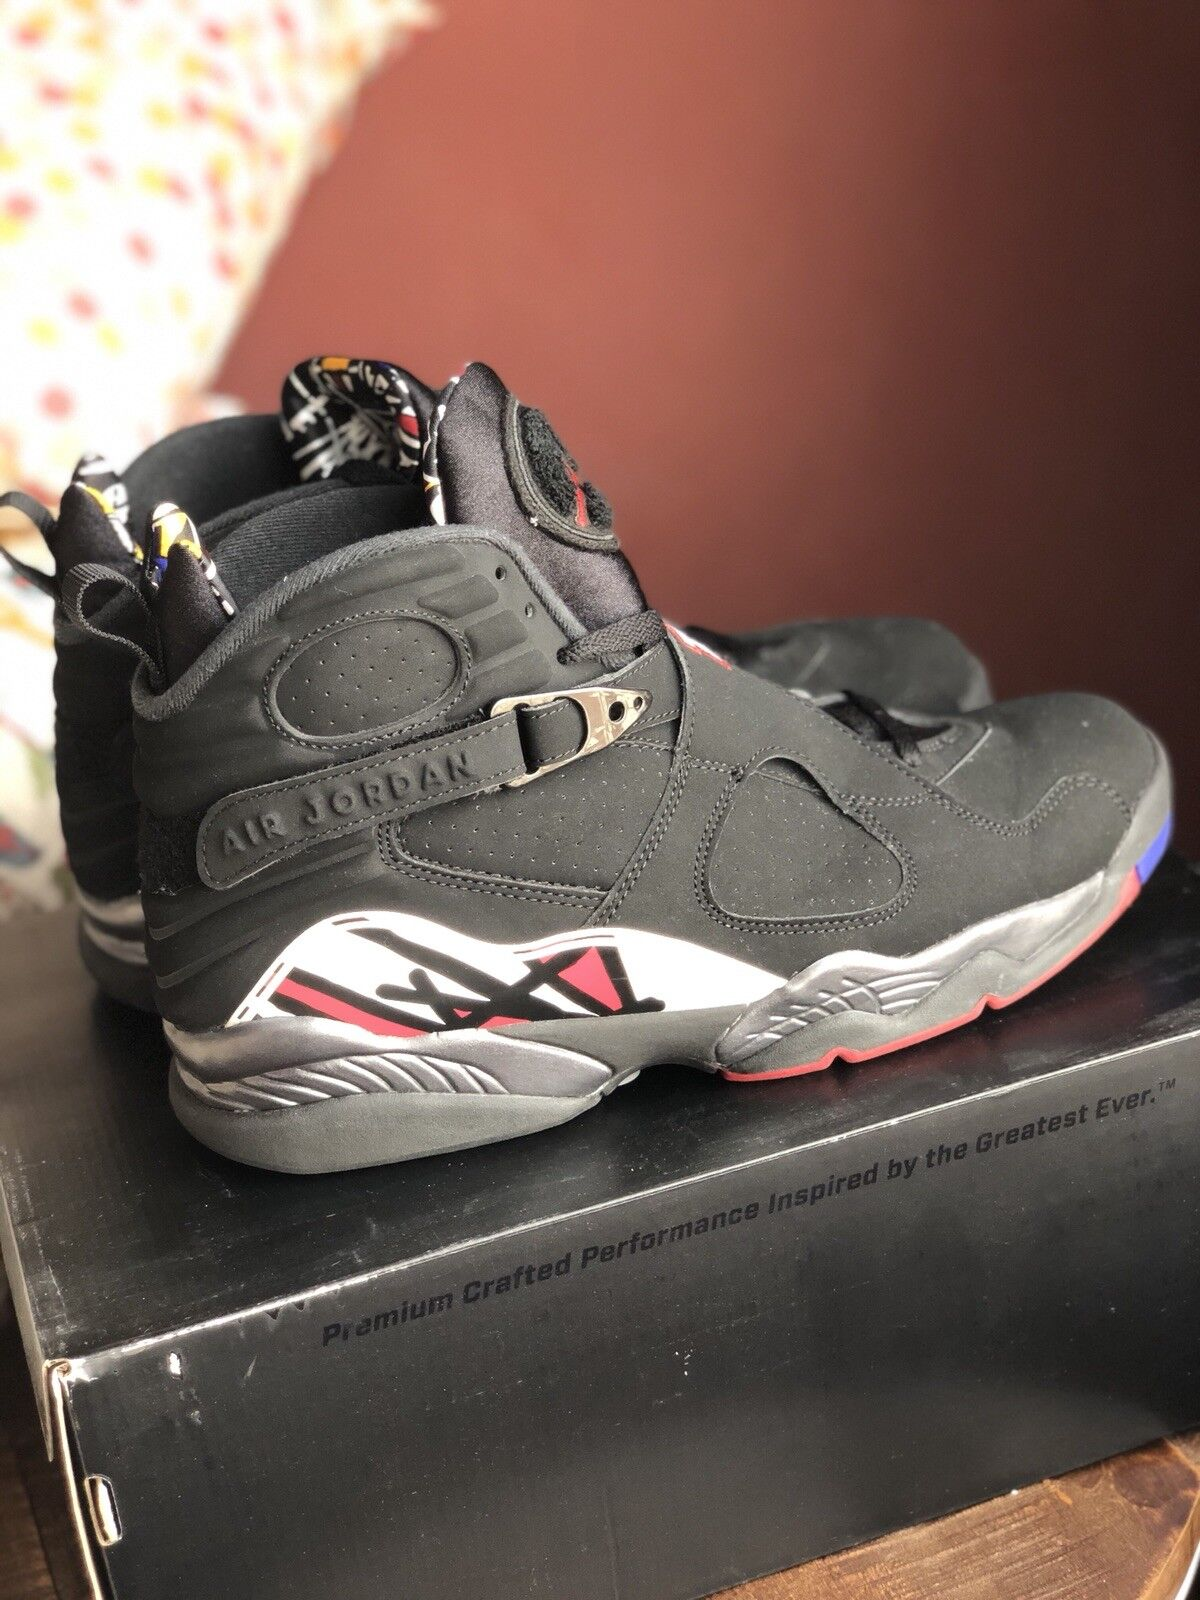 Nike Air Jordan 8 Playoff 8 shoes - Size 12 - Barely Used With Receipt